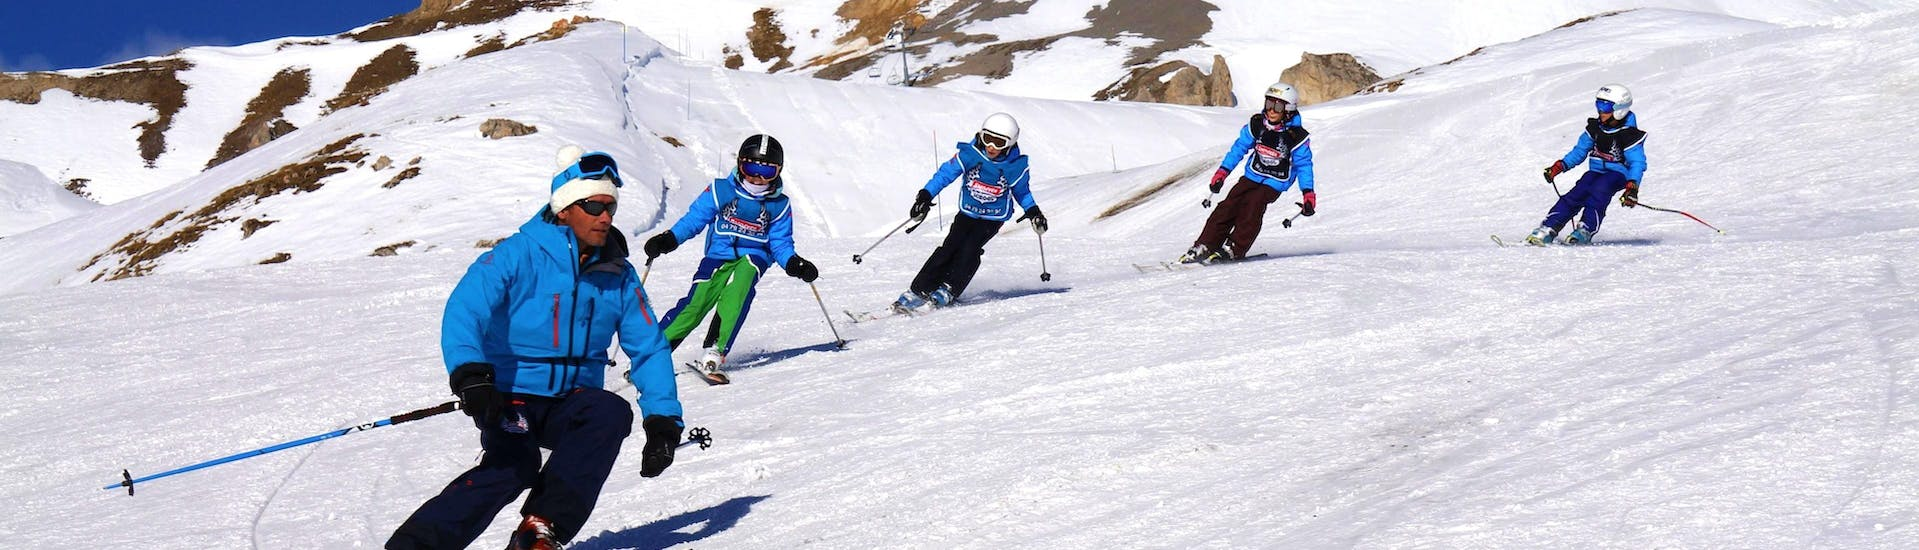 """Young skiers are following their instructor from the ski school Snocool on a snowy slope during theirKids Ski Lessons """"Pop 6"""" (10-17 years) - Advanced."""